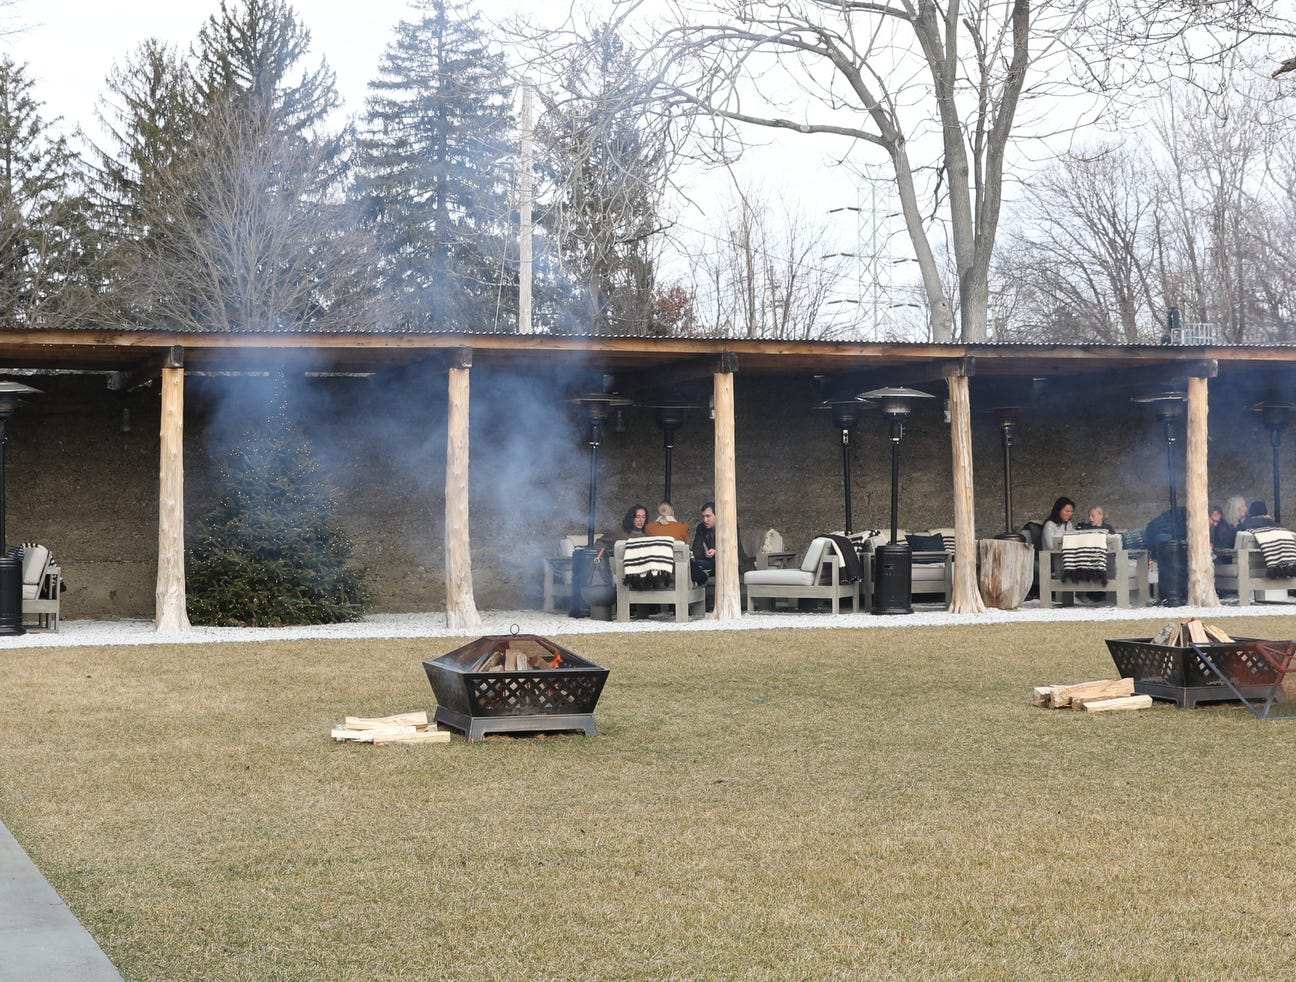 The outdoor seating area at the Valley Rock Inn & Mountain Club in Sloatsburg on Saturday, January 12, 2019.